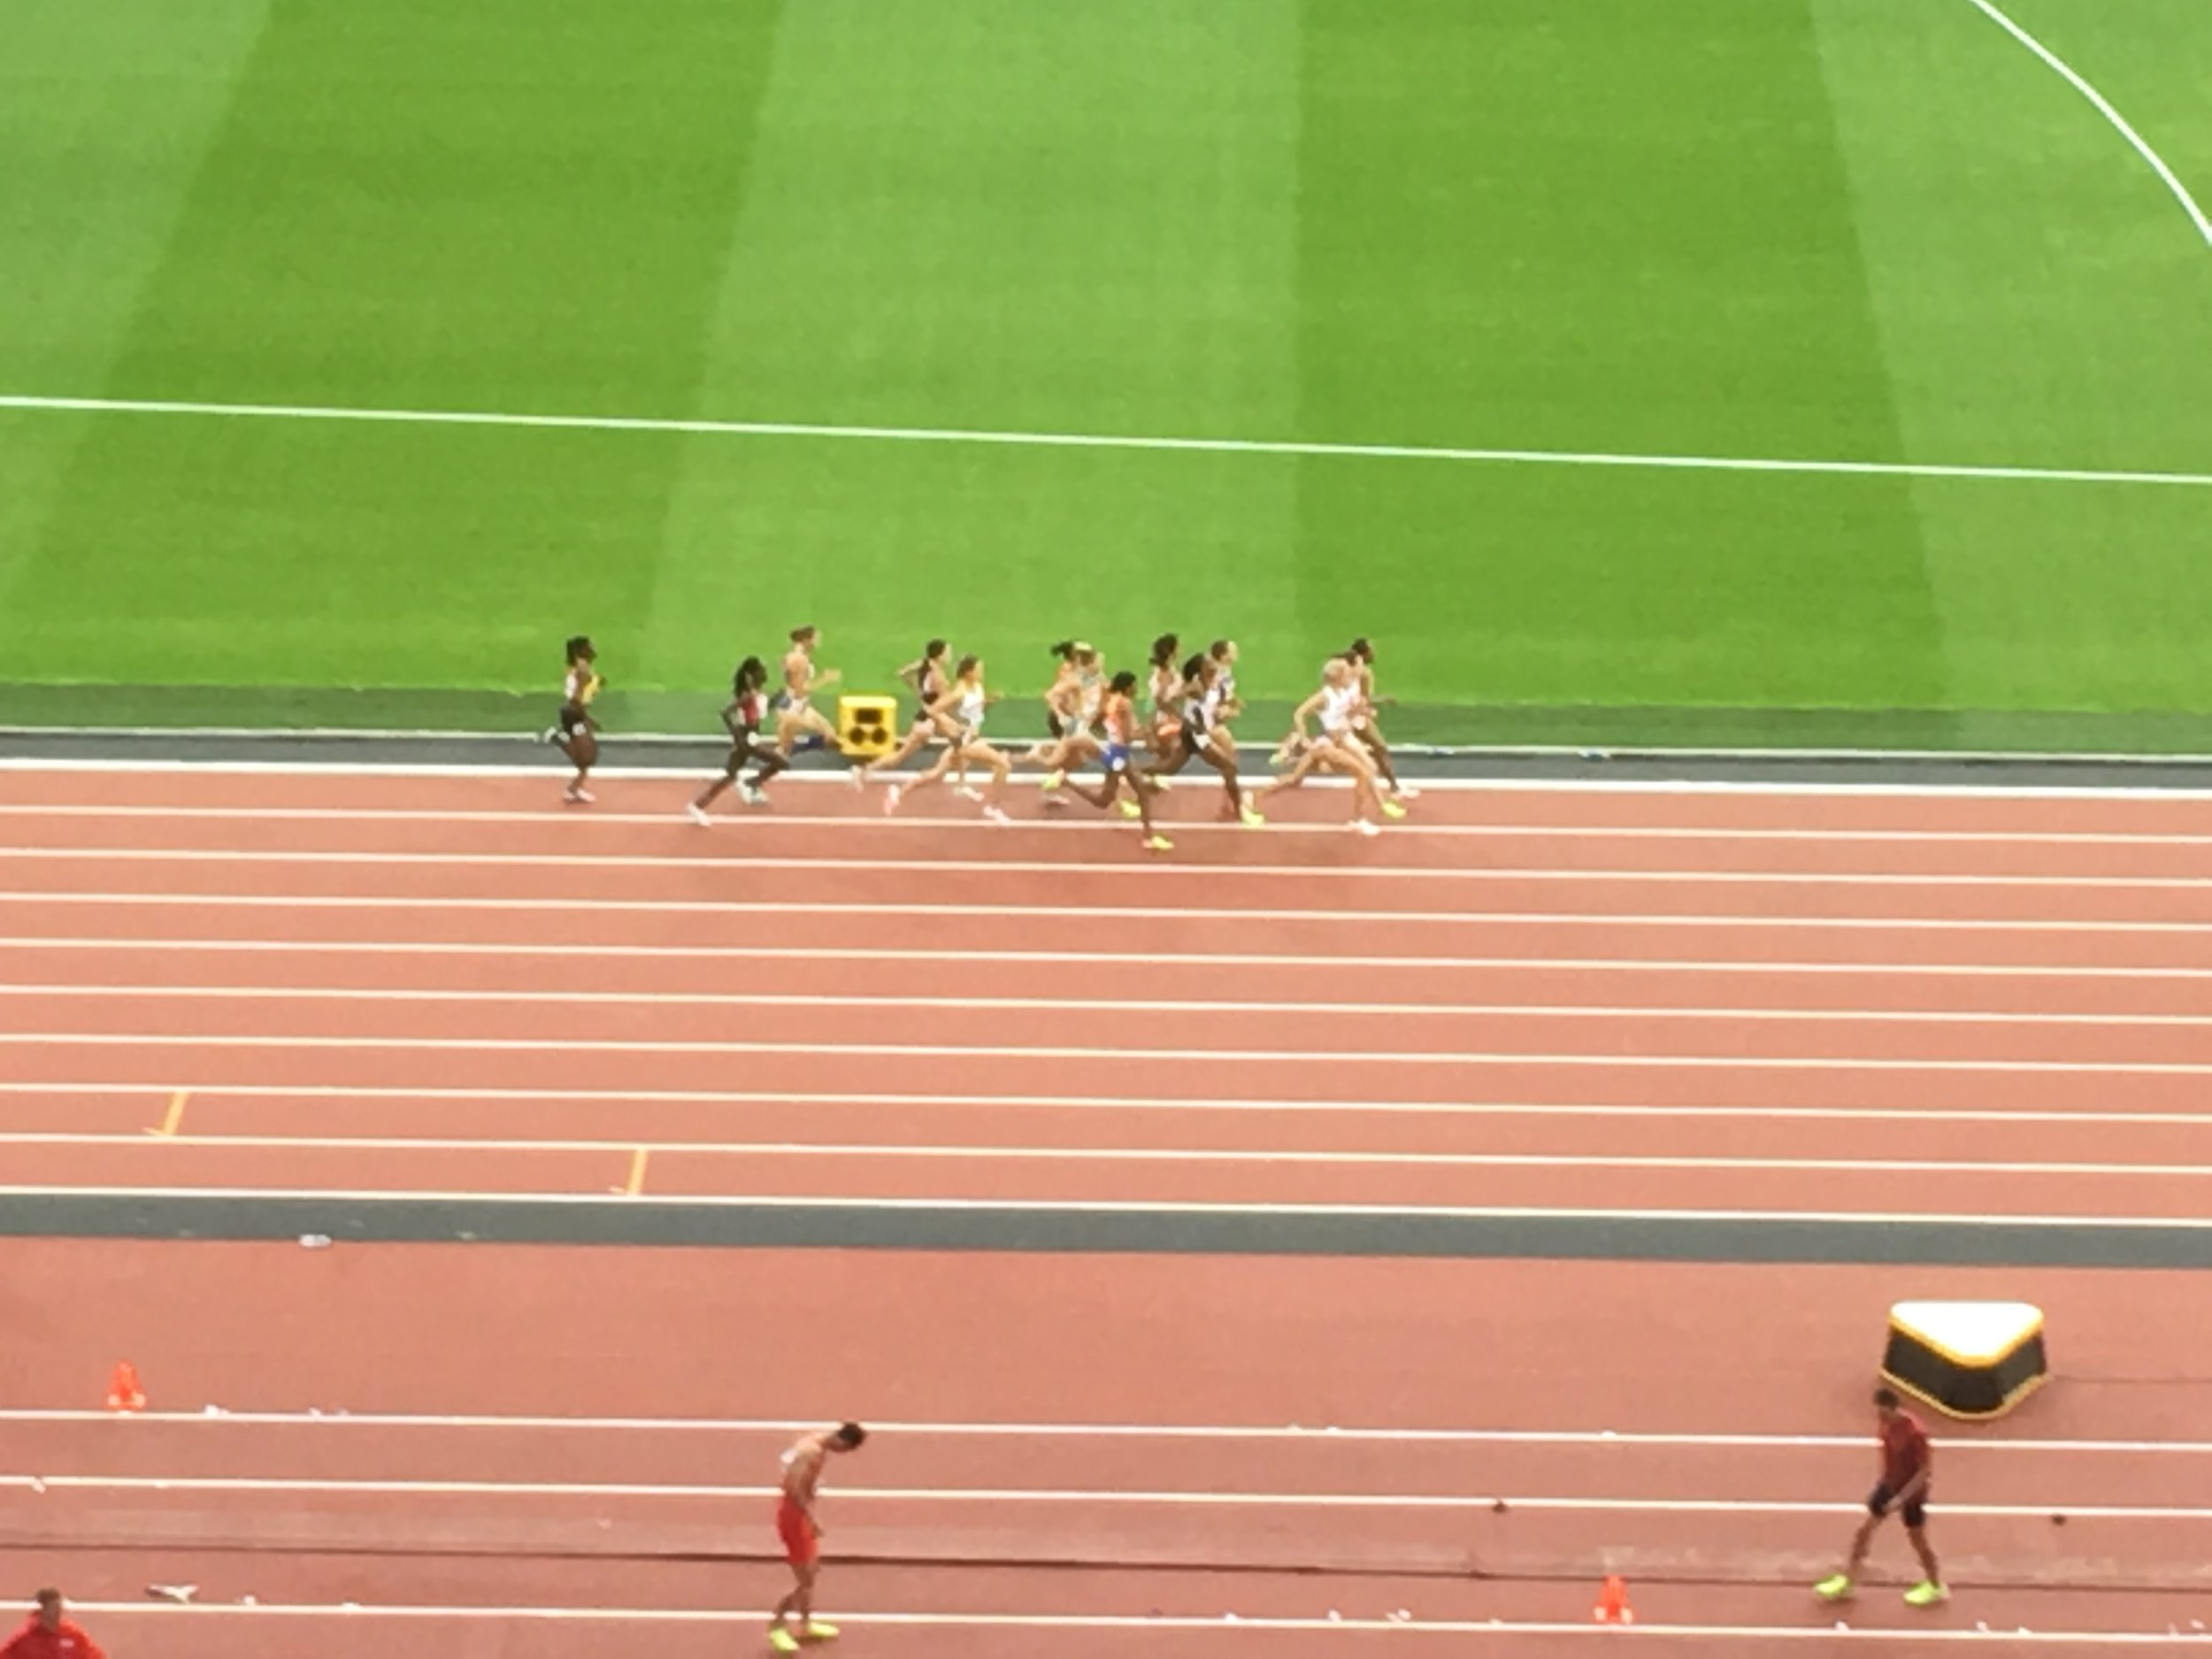 That's Jenny Simpson down there on the last lap of her opening round but you'll have to take my word for it. I was waaaaay up in the cheap seats.